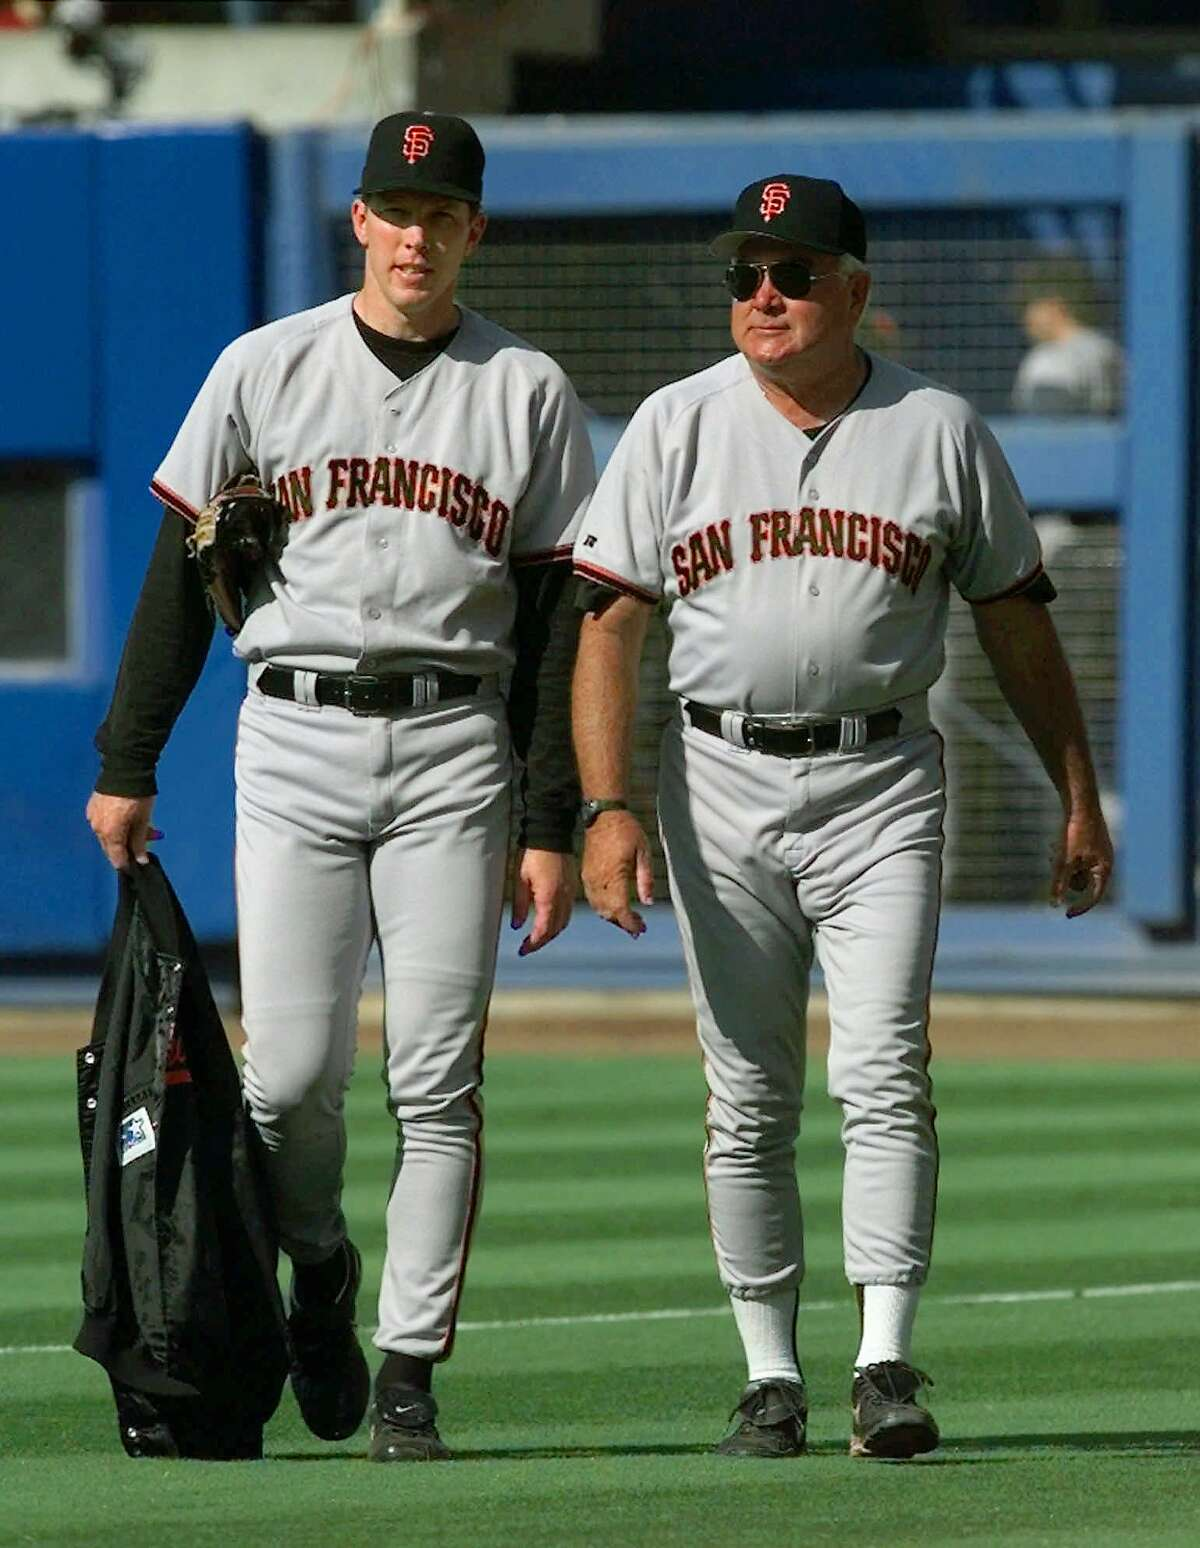 San Francisco Giants starting pitcher Orel Hershiser, left, and his pitching coach Ron Perranoski walk to the dugout from the bullpen to face his former team, the Los Angeles Dodgers, at Dodger Stadium in Los Angeles, Wednesday, July 15, 1998. Perranoski used to be the Dodgers pitching coach. (AP Photo/Kevork Djansezian)